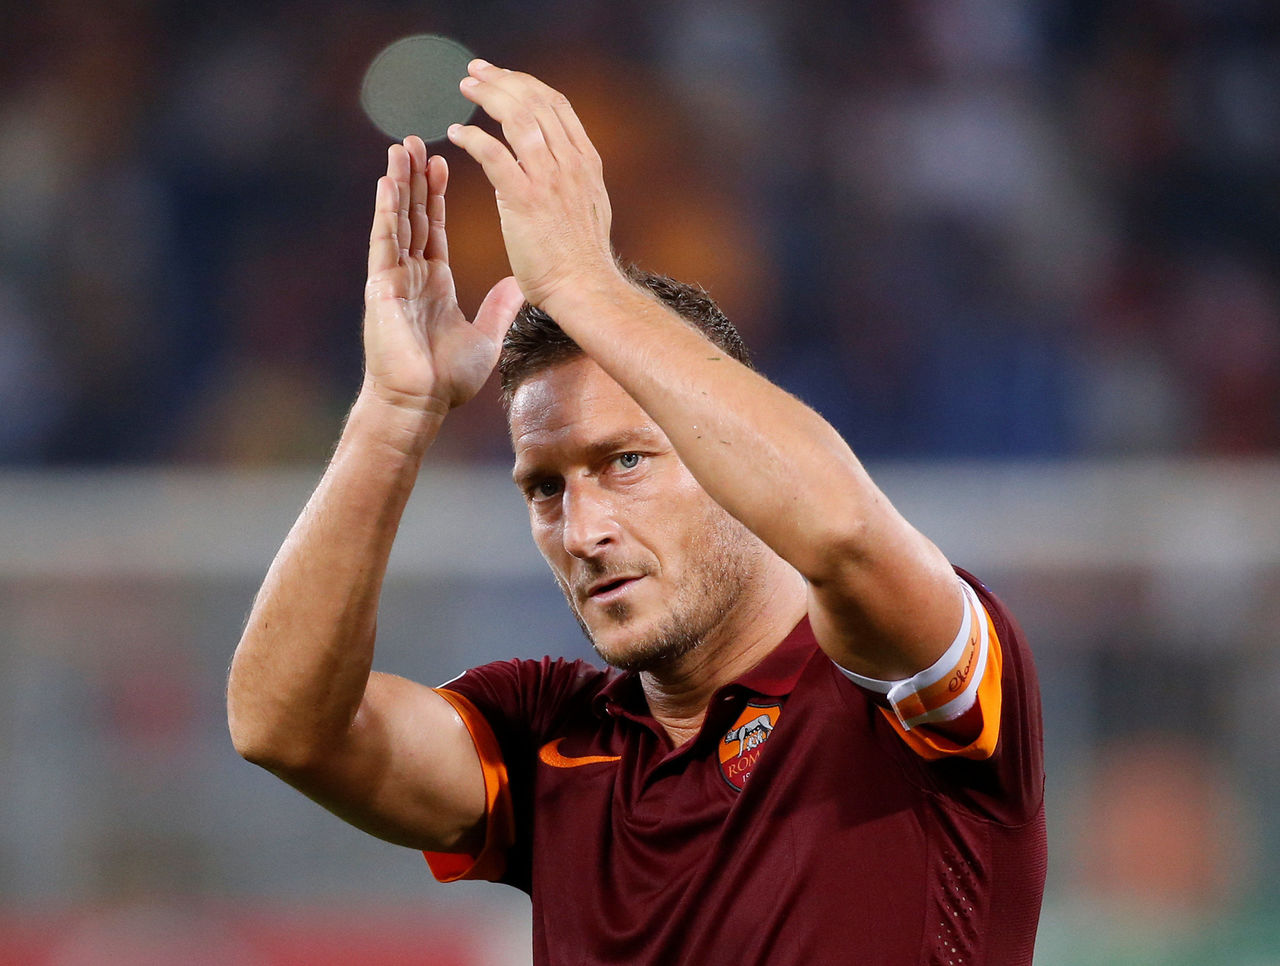 Cropped 2017 05 03t203651z 978264543 rc1470d69030 rtrmadp 3 soccer italy rom totti